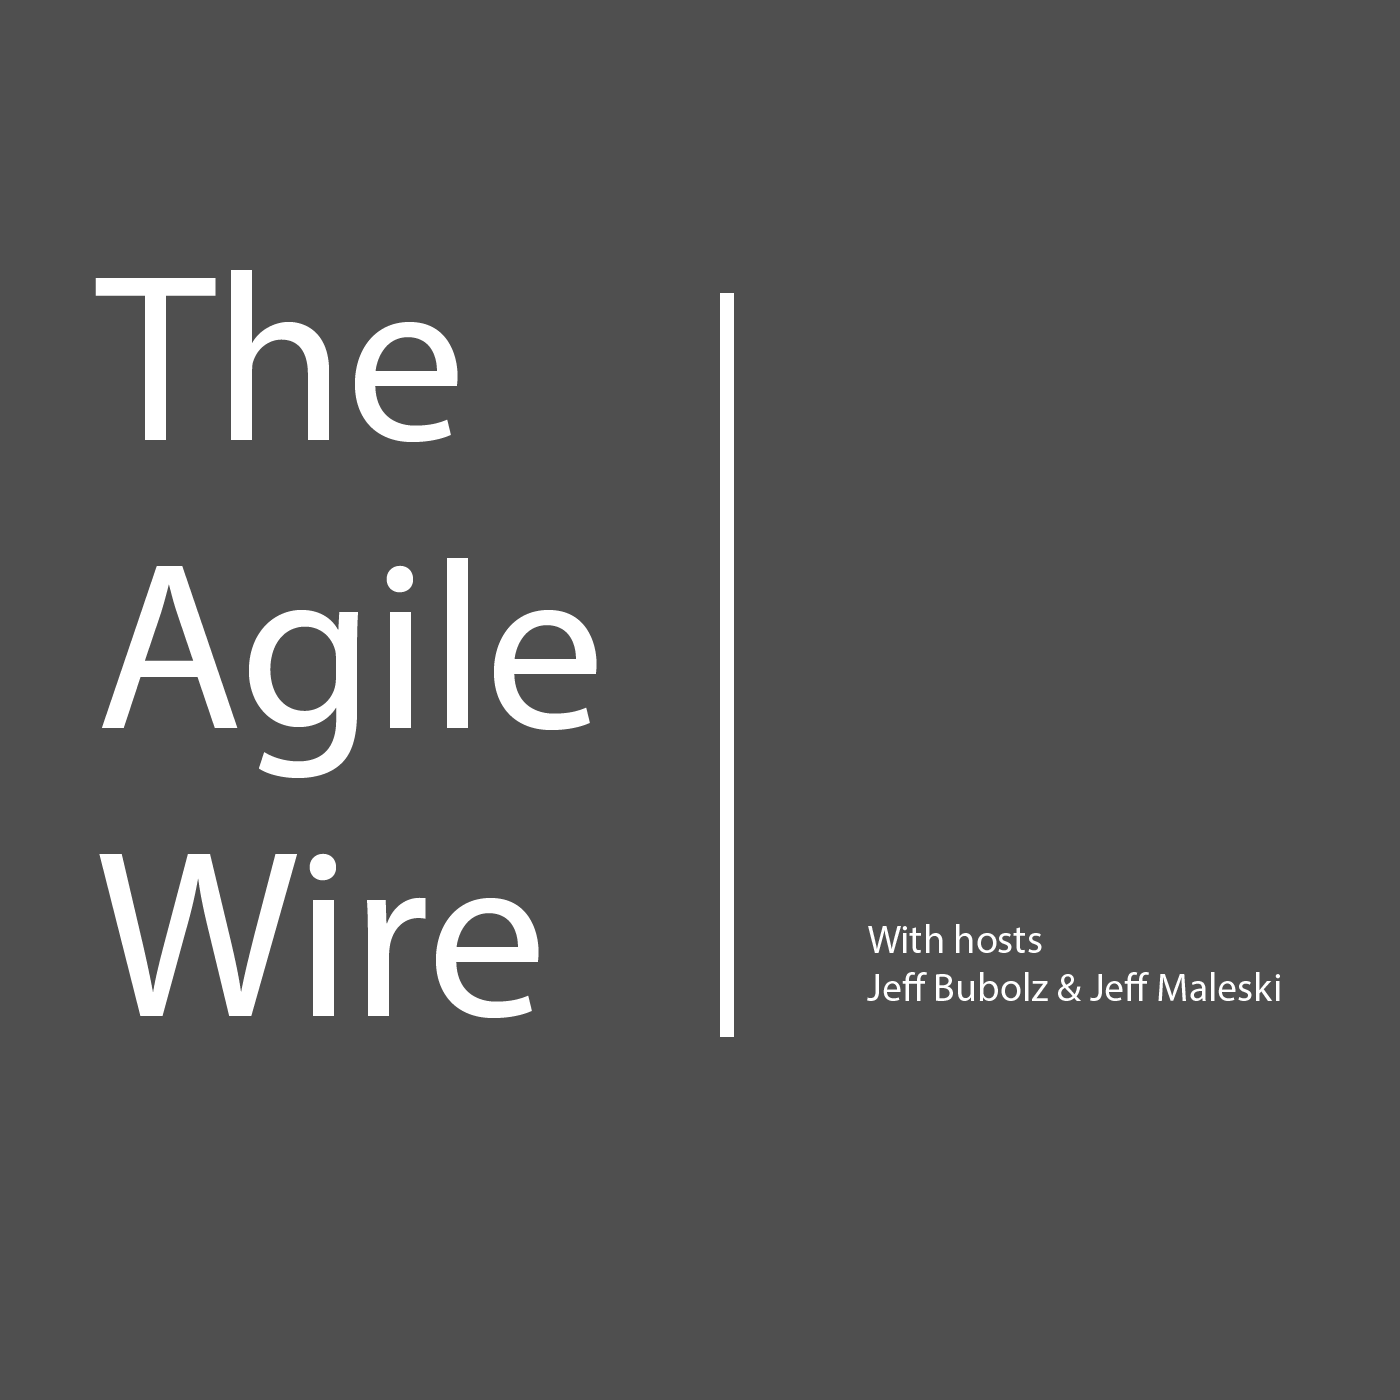 The Agile Wire